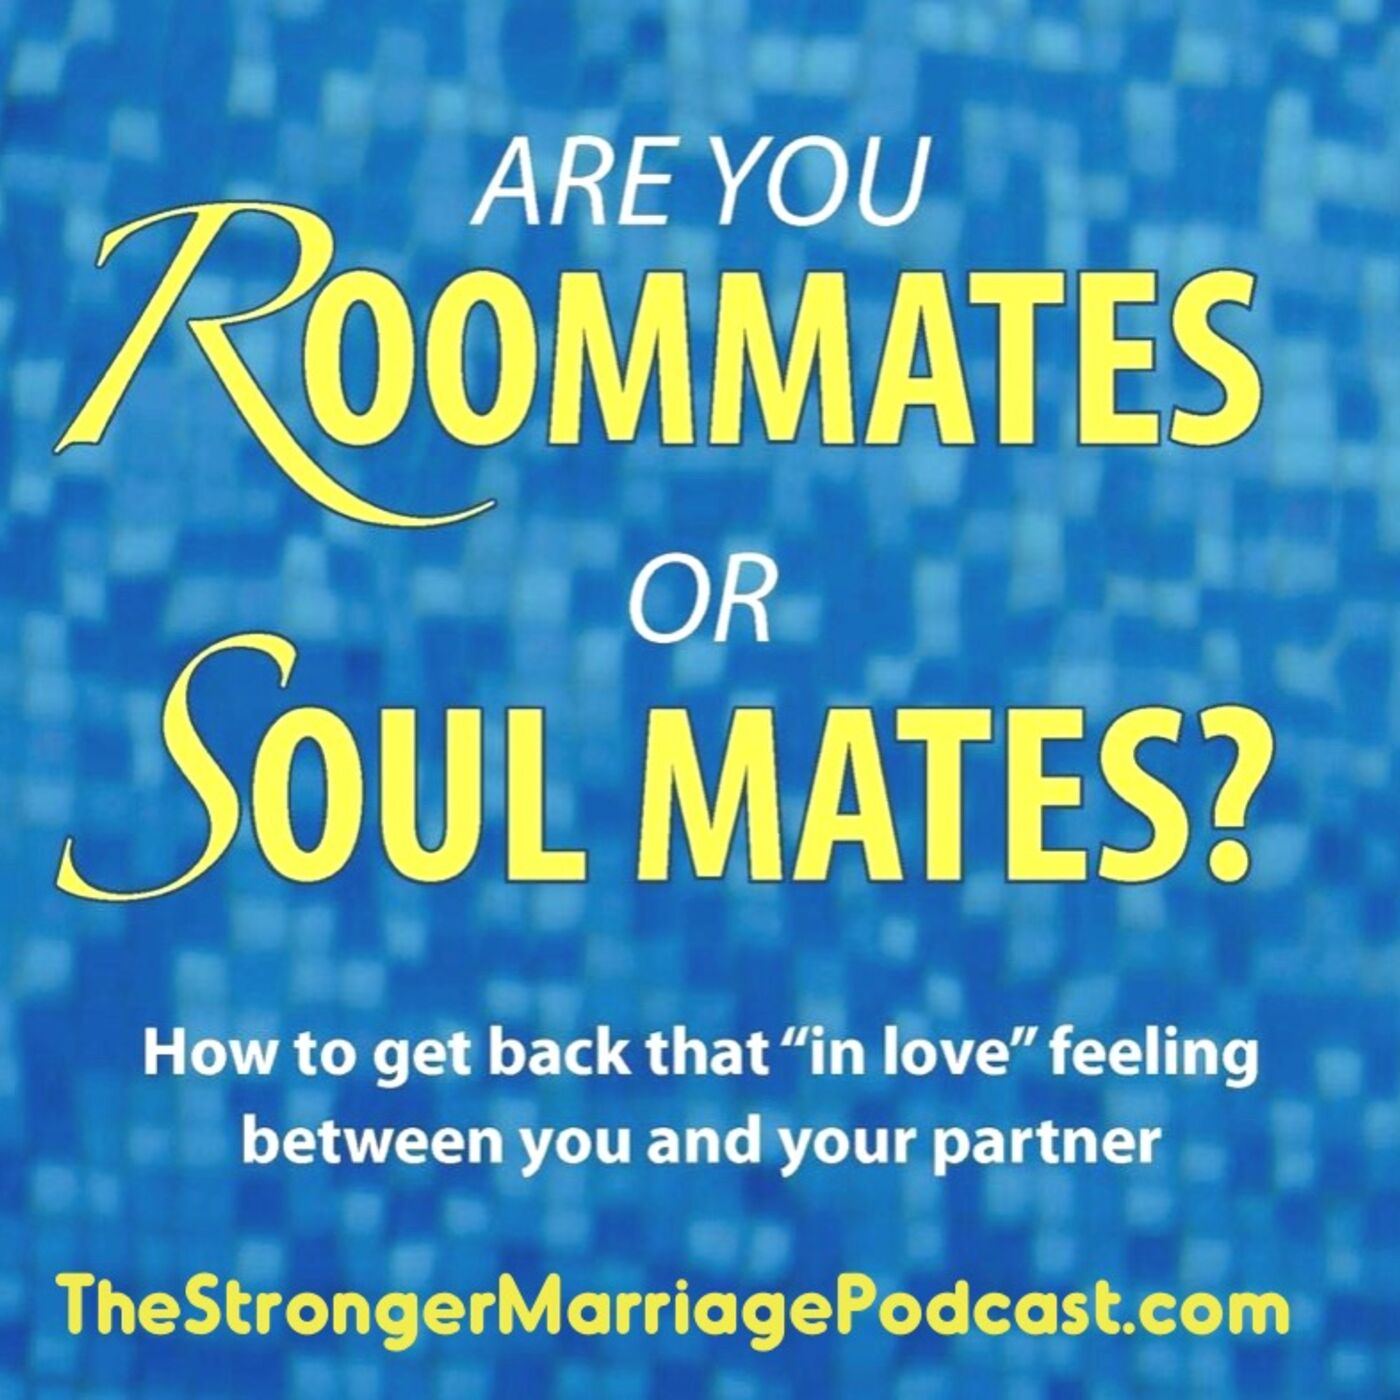 Are You ROOMMATES or SOULMATES?